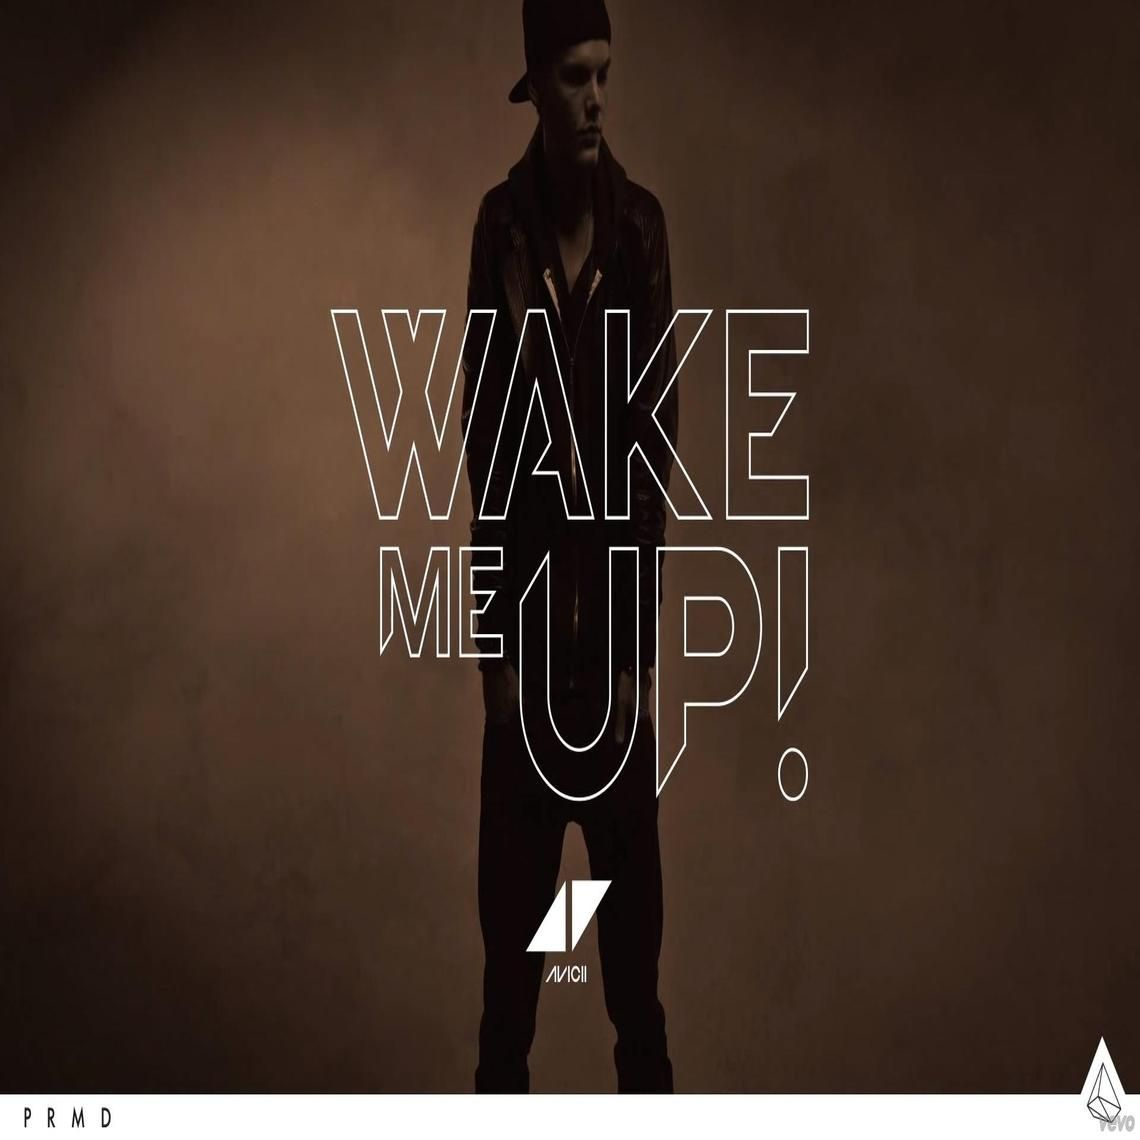 Avicii - Wake Me Up | wallpaper | Pinterest | Avicii